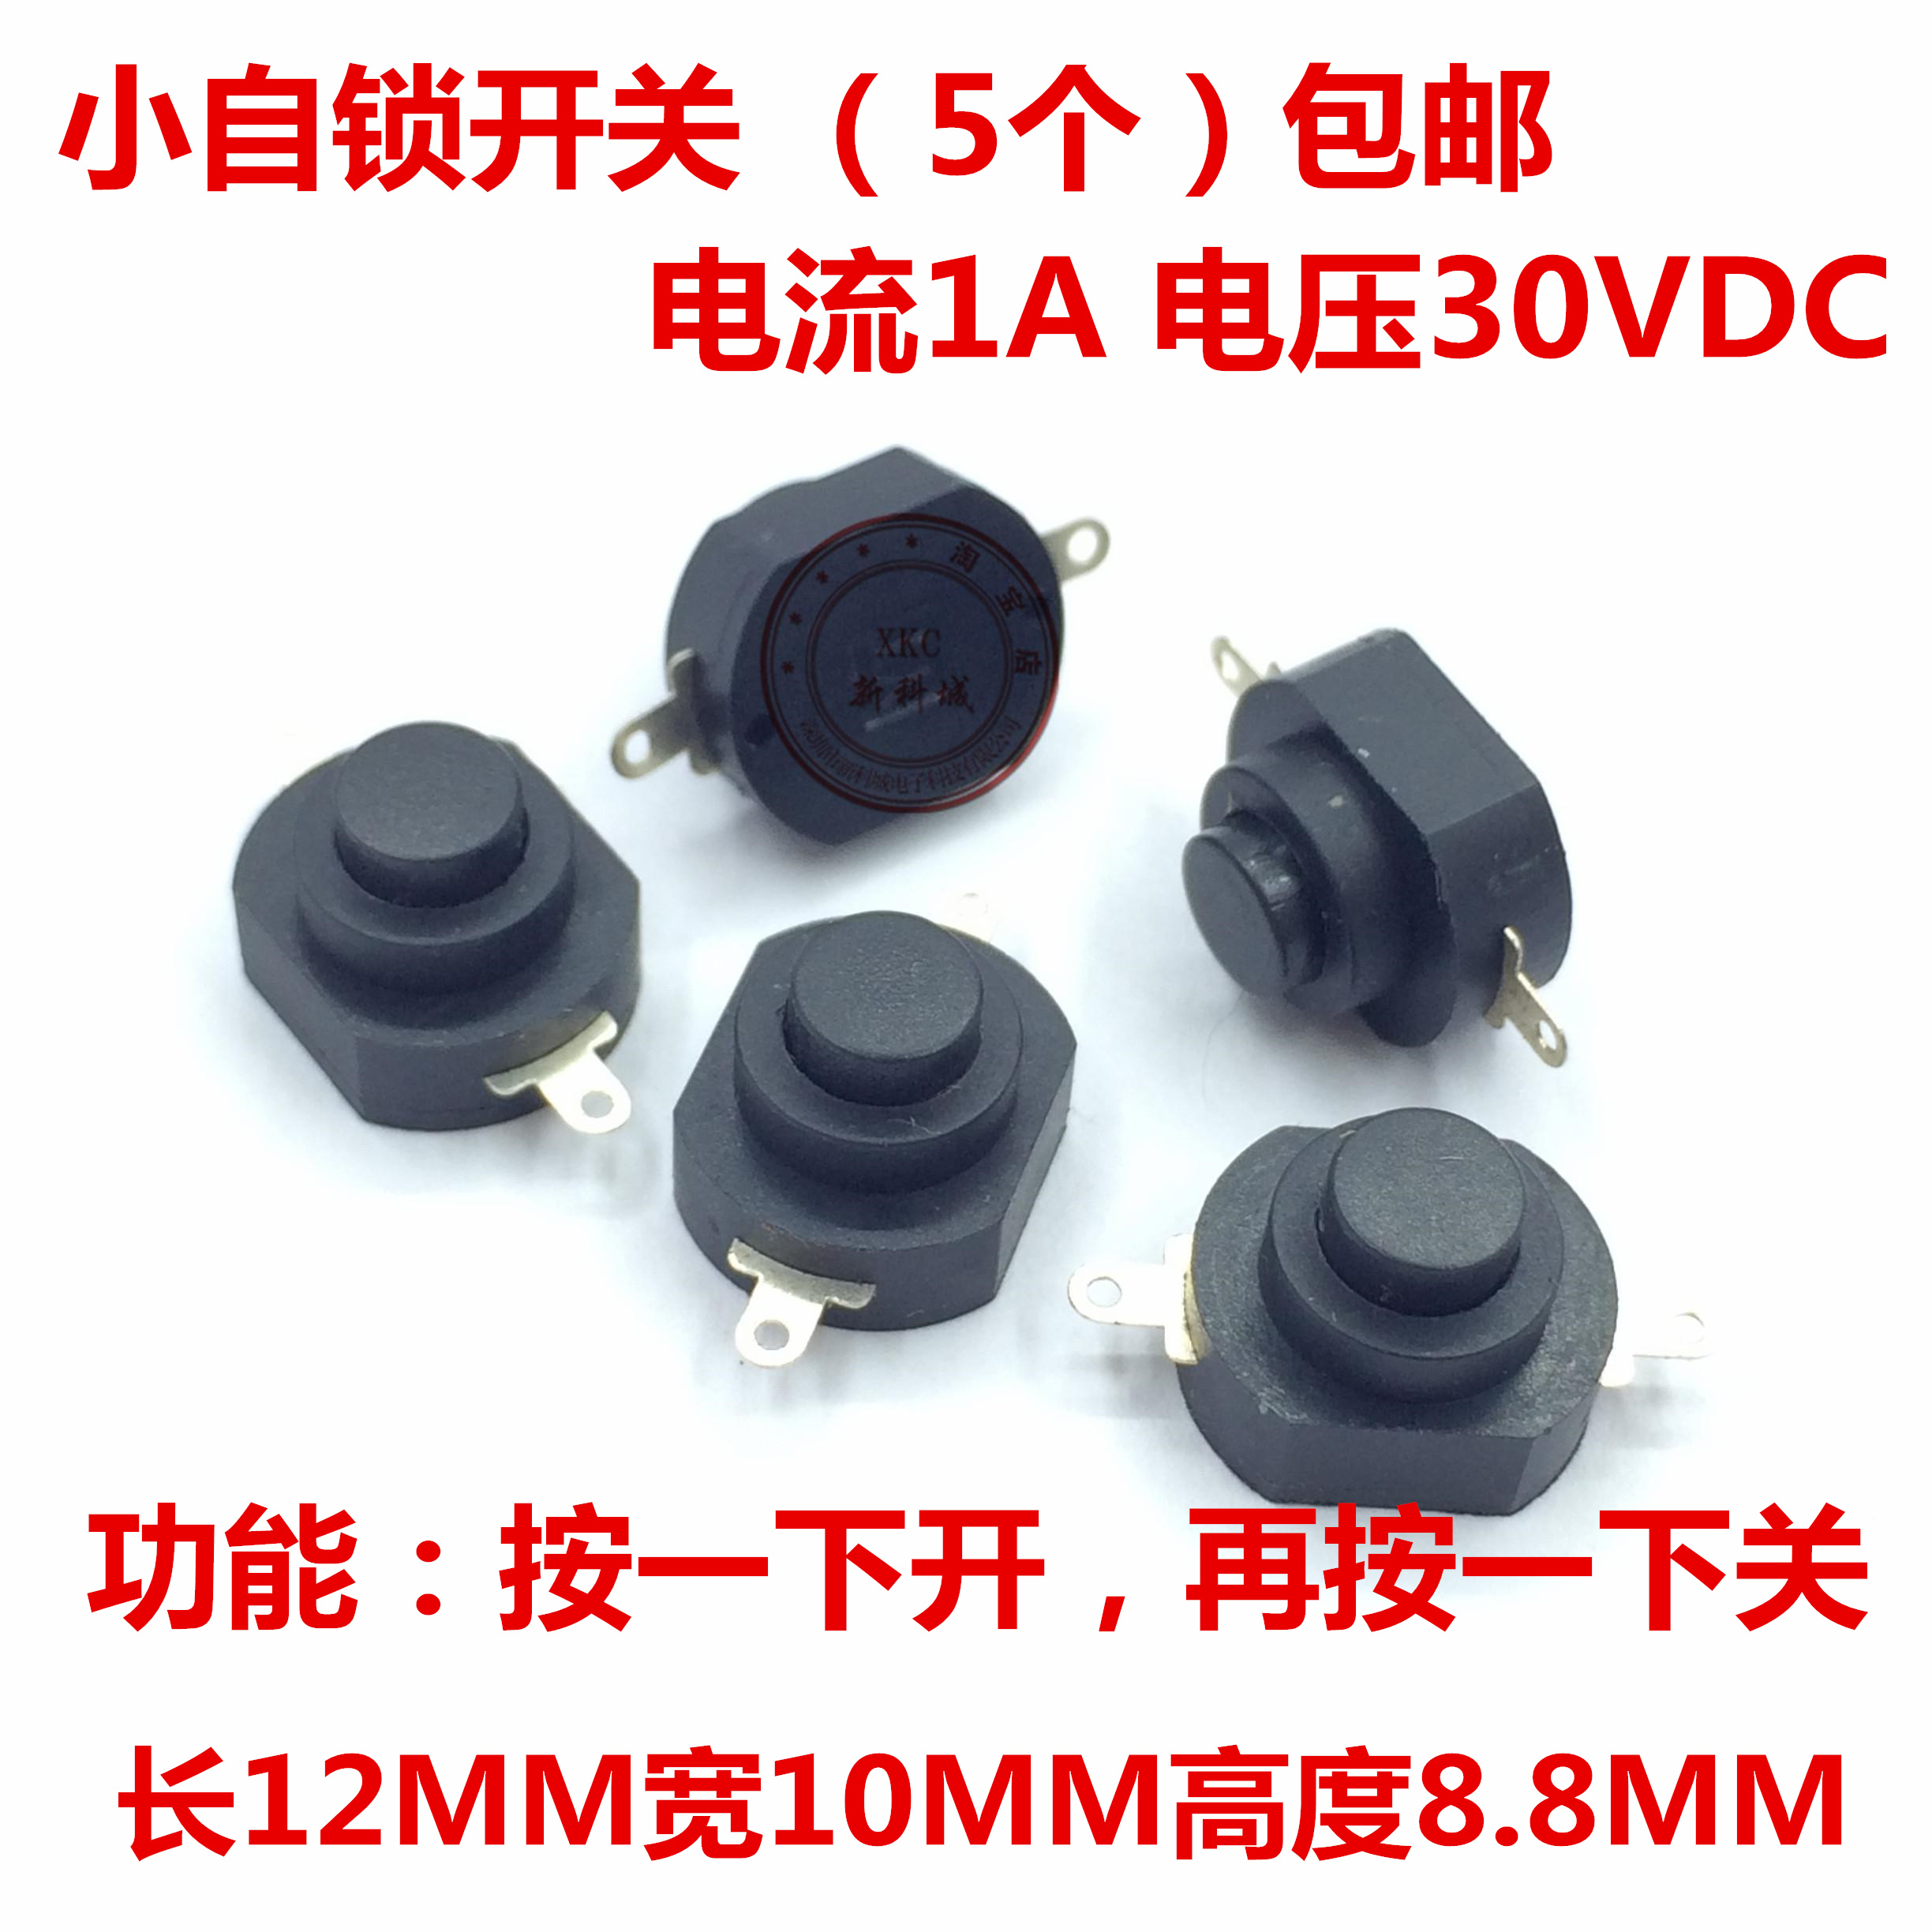 Shipping (5) opened a 2 foot self-locking switch 12MM width 10MM High Commissioner 8.8MM button button